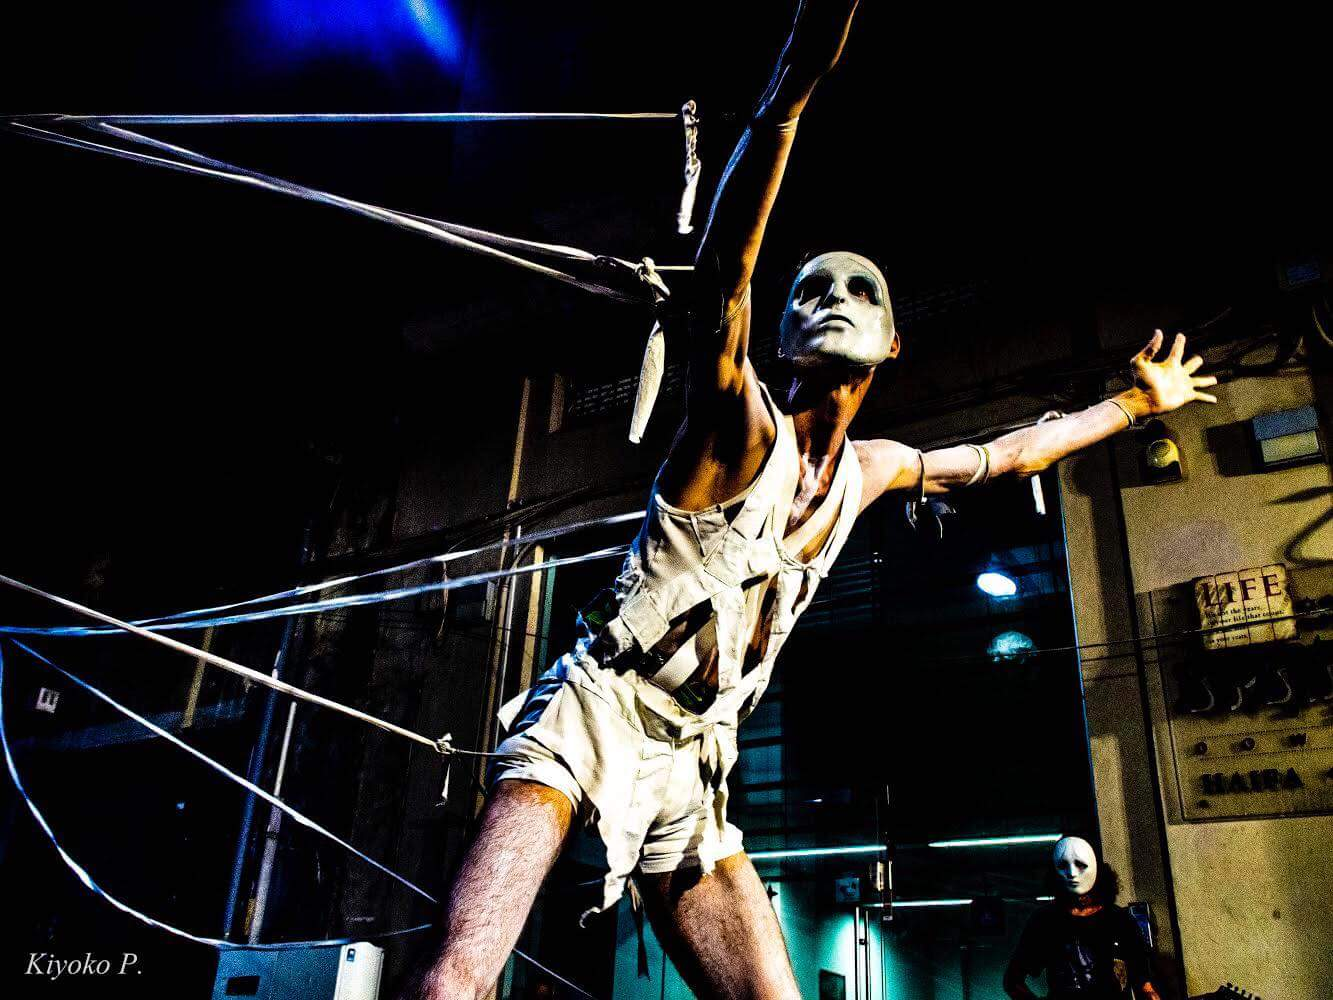 aerial, halloween, cage, performer, artist, street, theatre, tightrop, projection, dance, circus